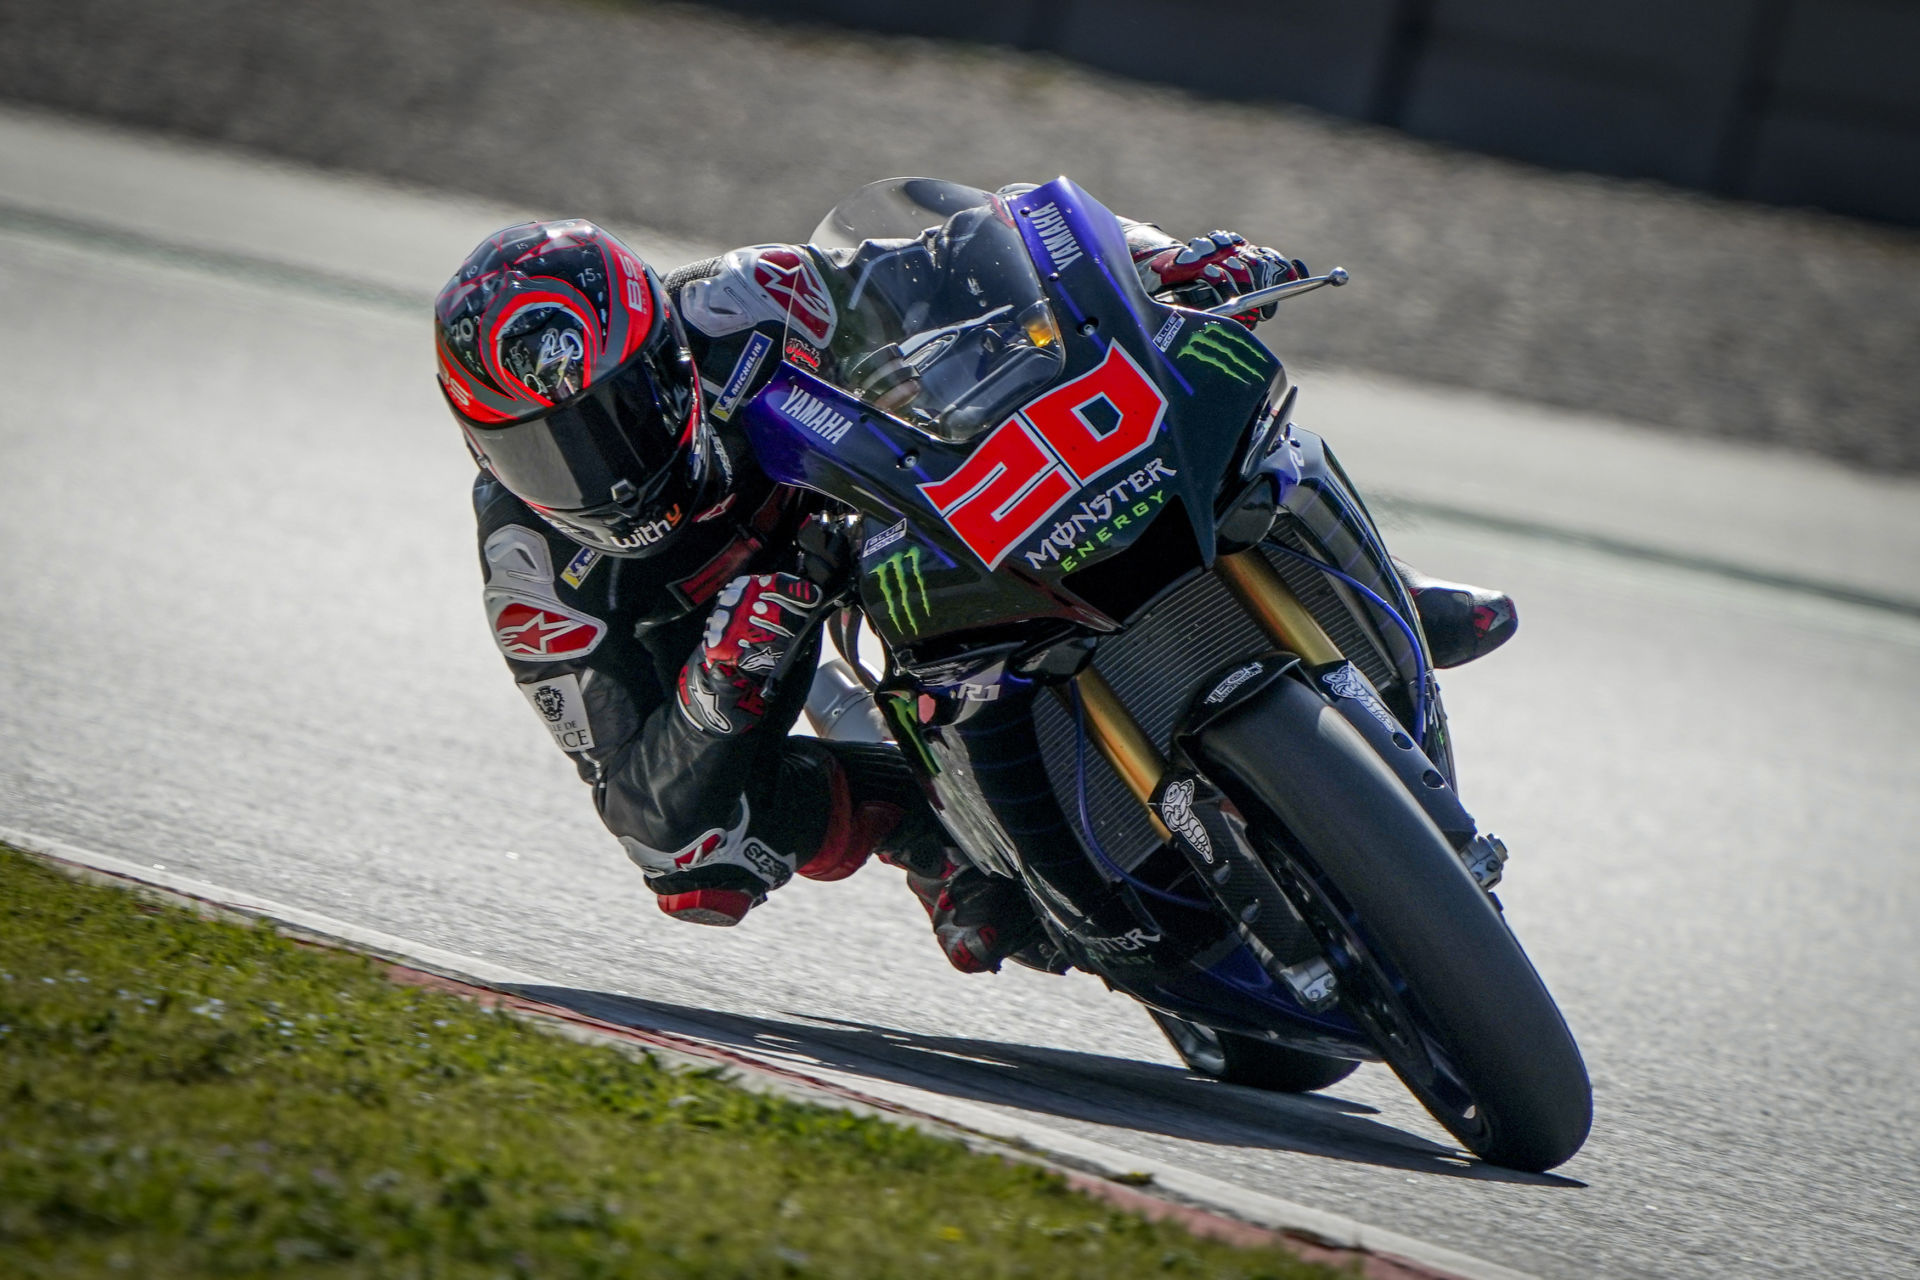 MotoGP: Riders Hit The Track With Production Bikes At Catalunya